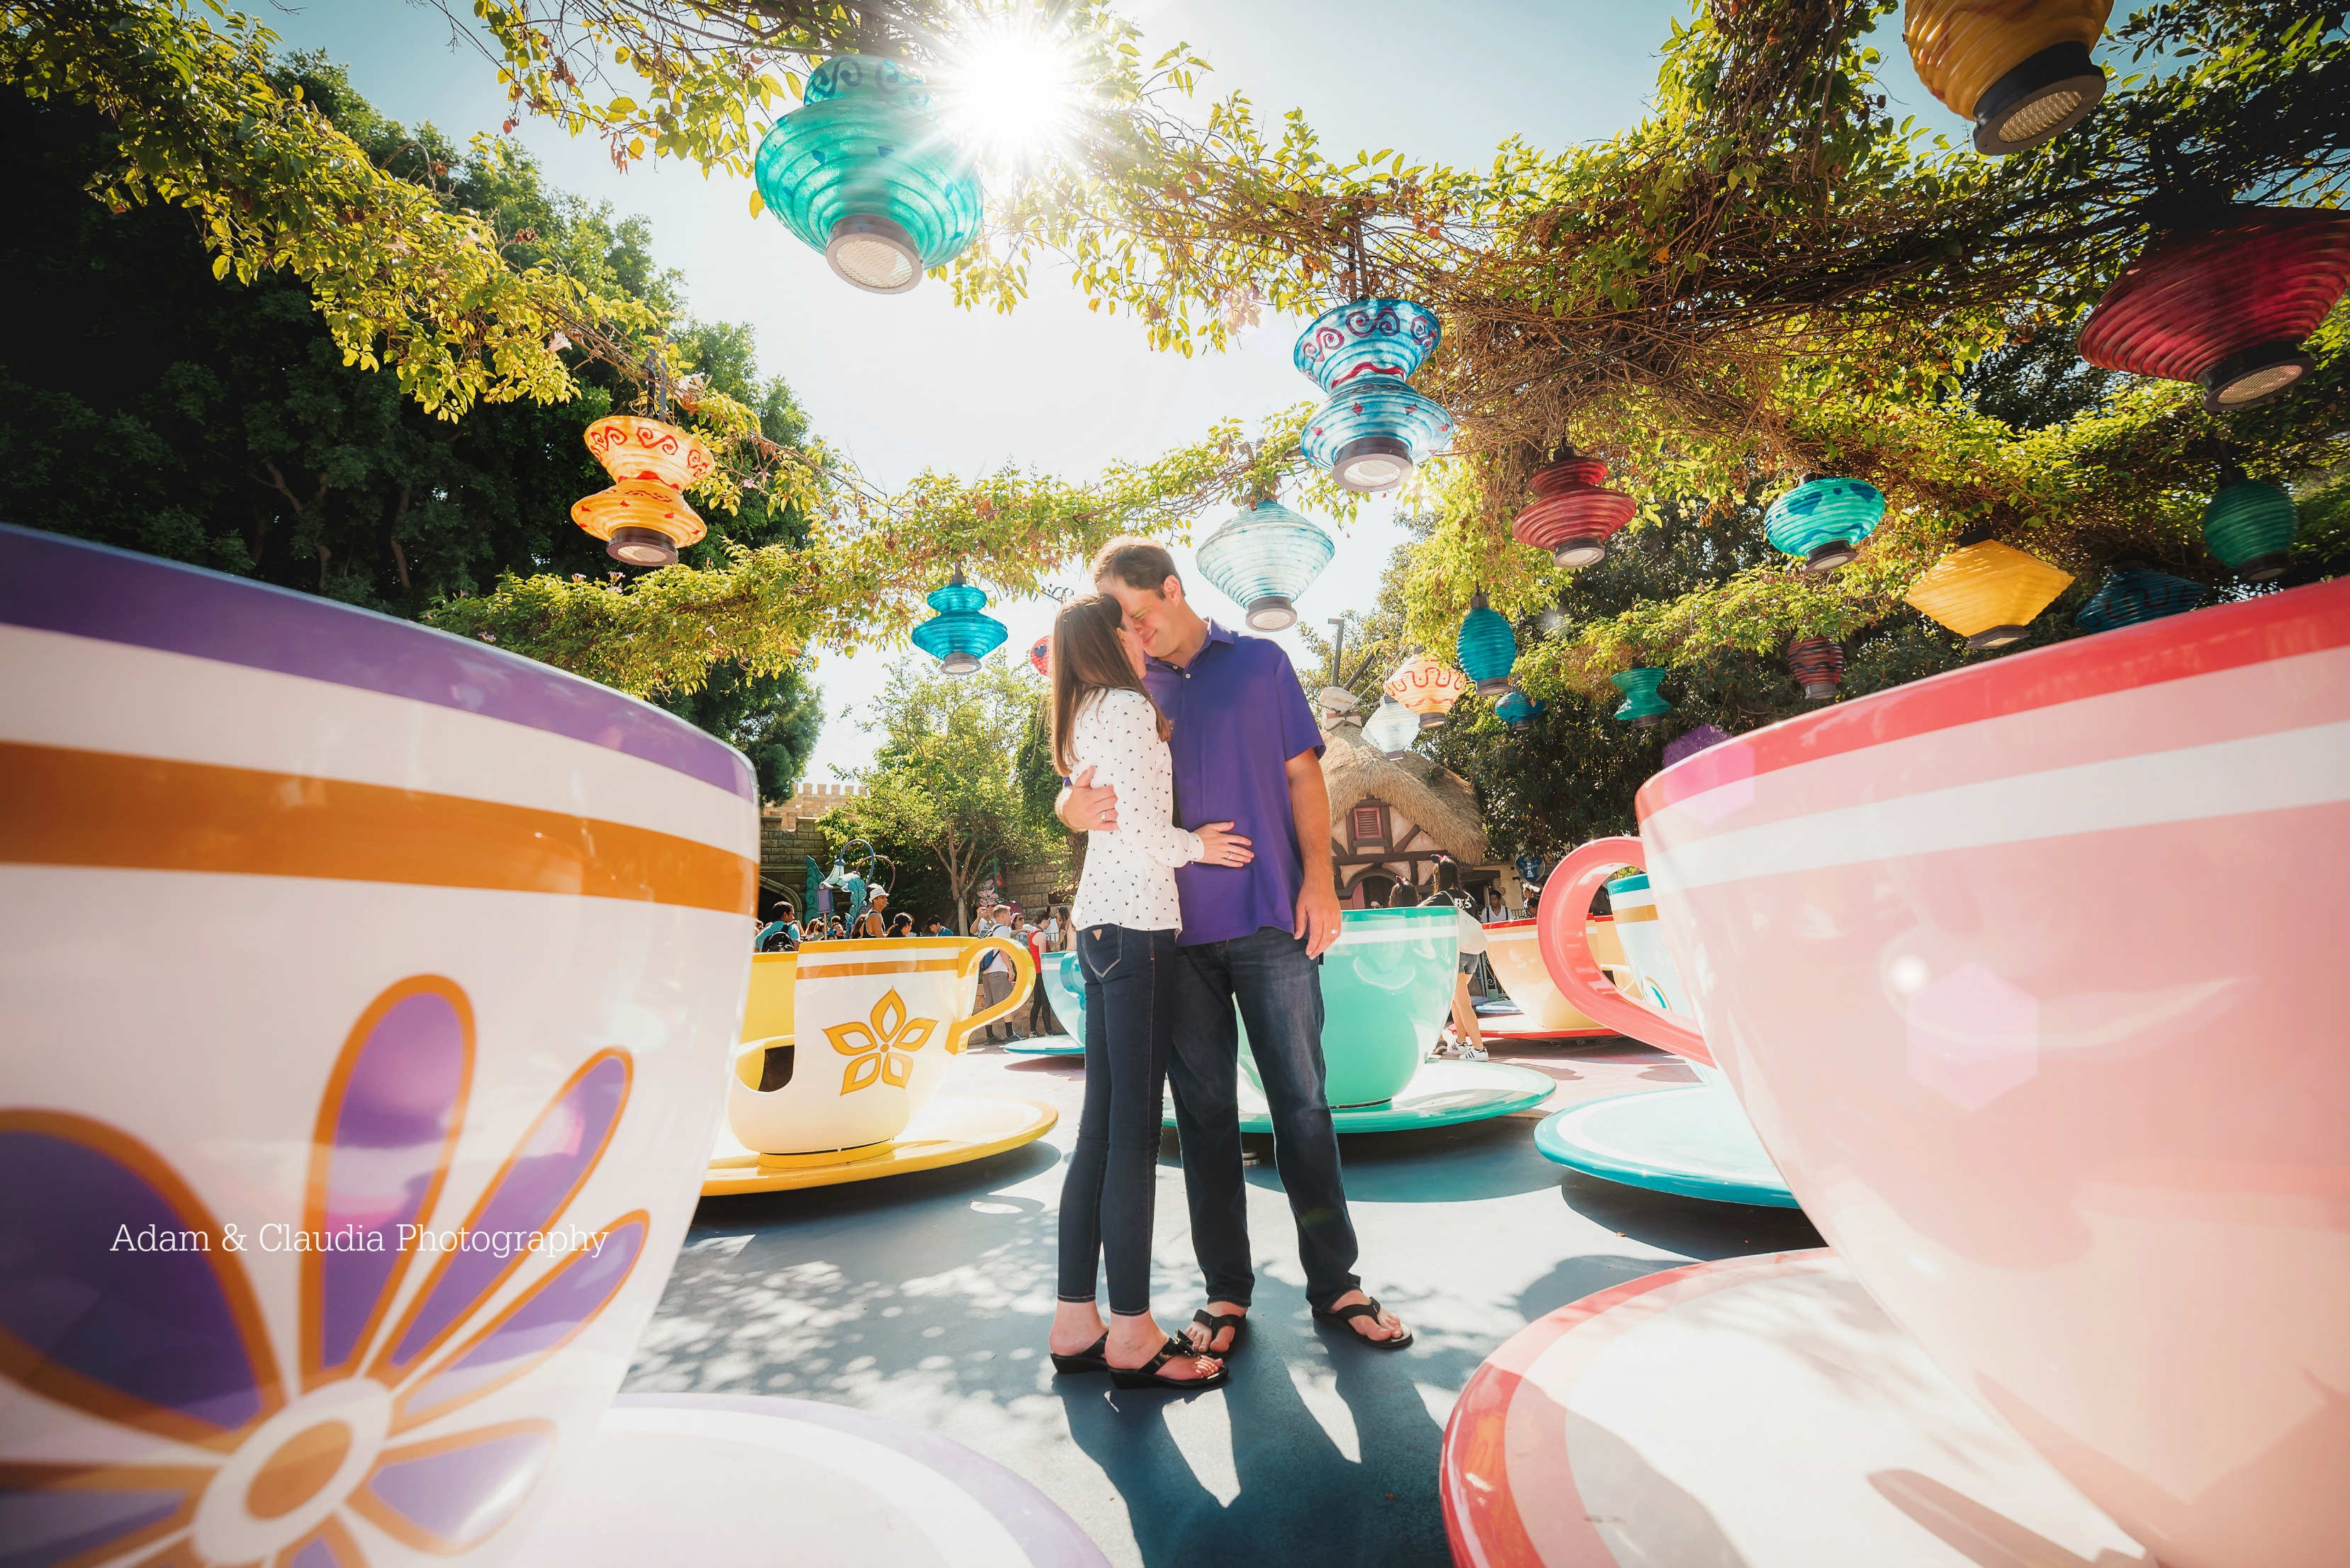 Disney photoshoot in Disneyland